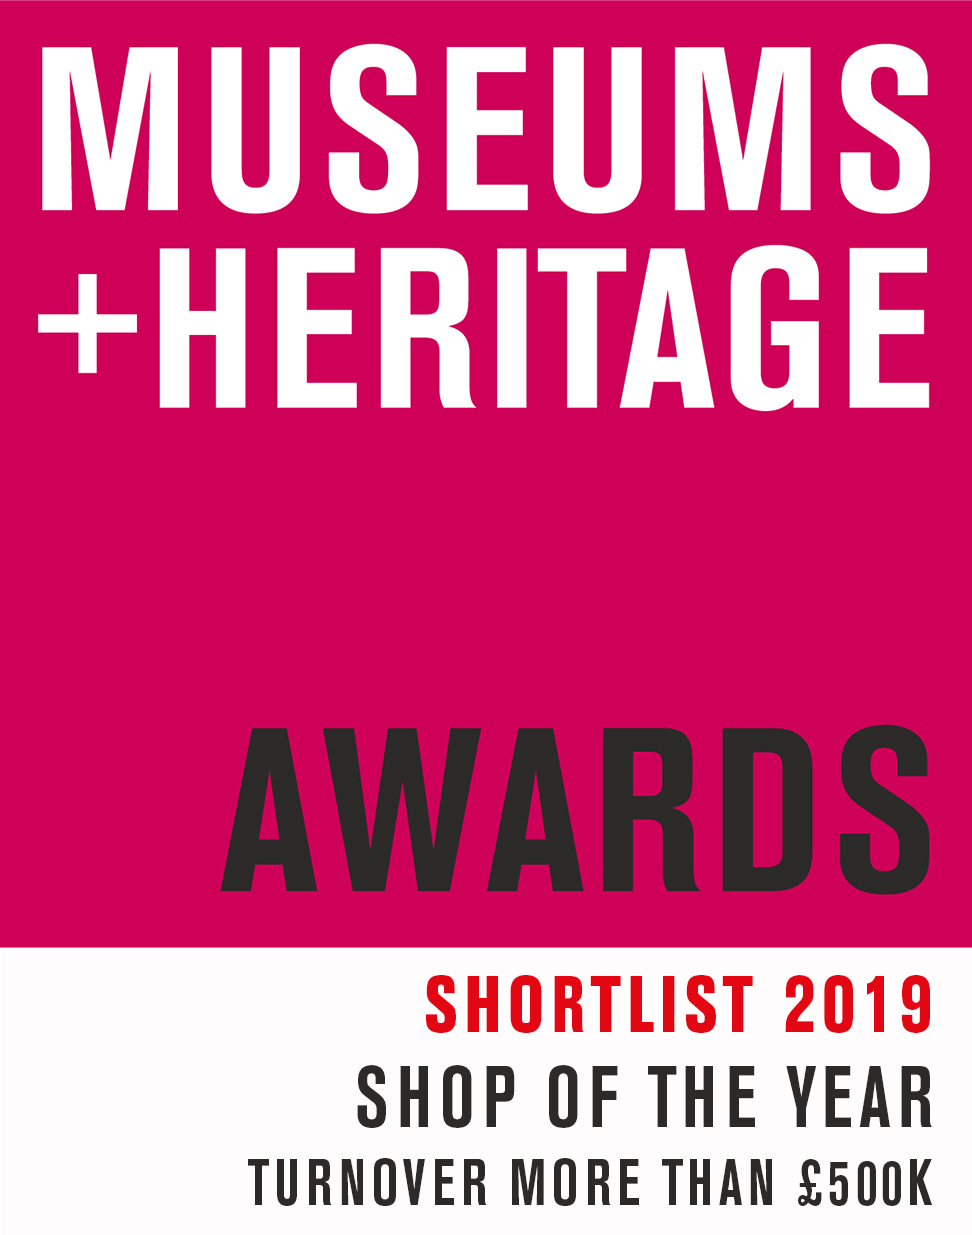 The RAF Museum London's Shop is shortlisted for the Shop of the Year (Turnover more than £500k) by the Museums + Heritage Awards